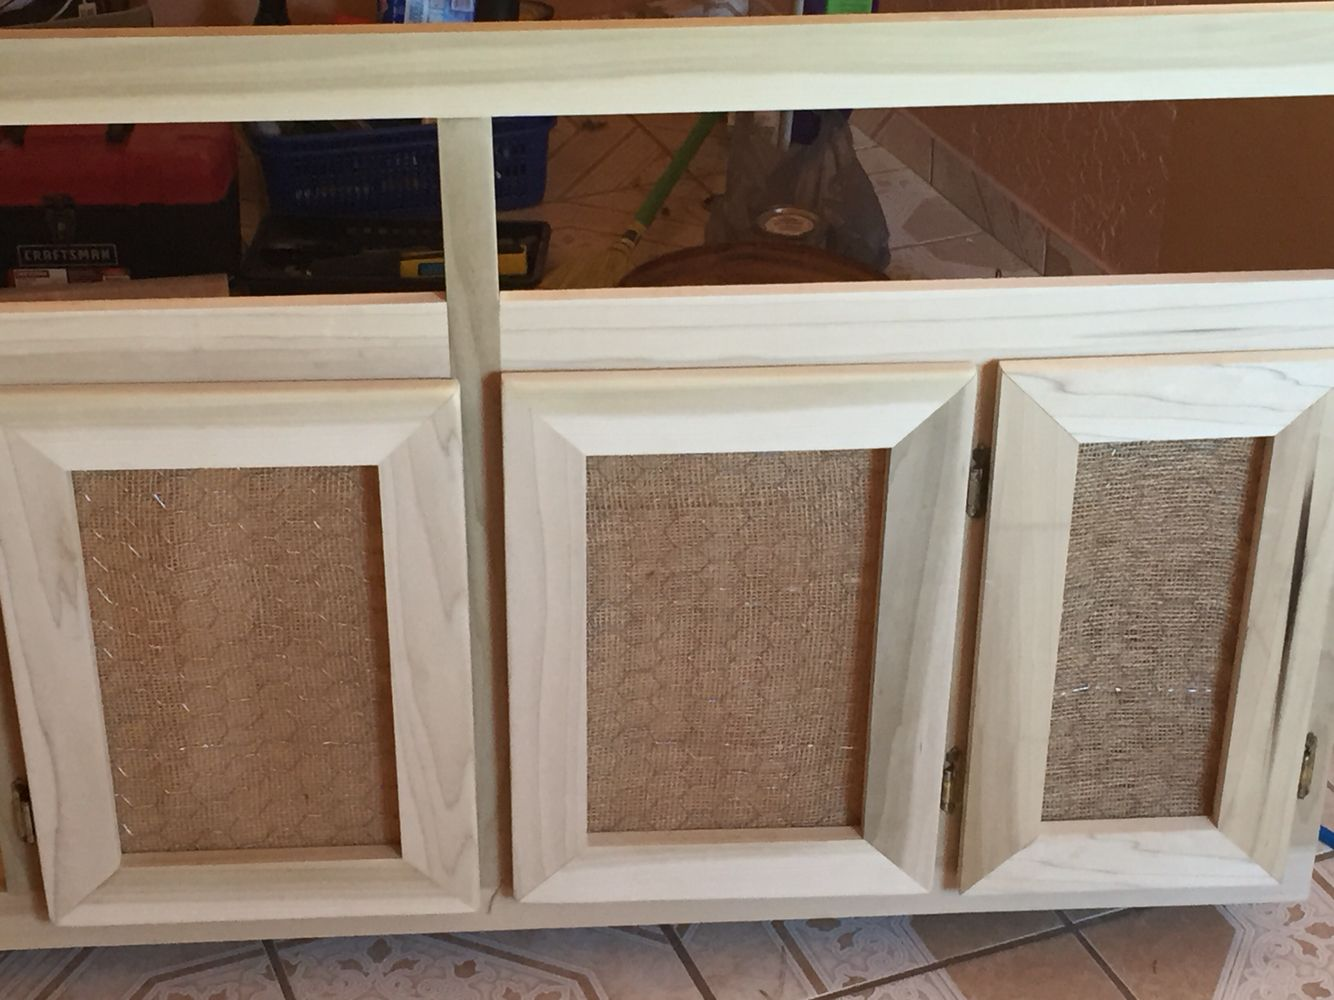 Diy Cabinet Door Used Burlap And Chicken Wire For A More Rustic Look Diy Cabinet Doors Rustic Cabinet Doors Kitchen Cabinet Door Styles